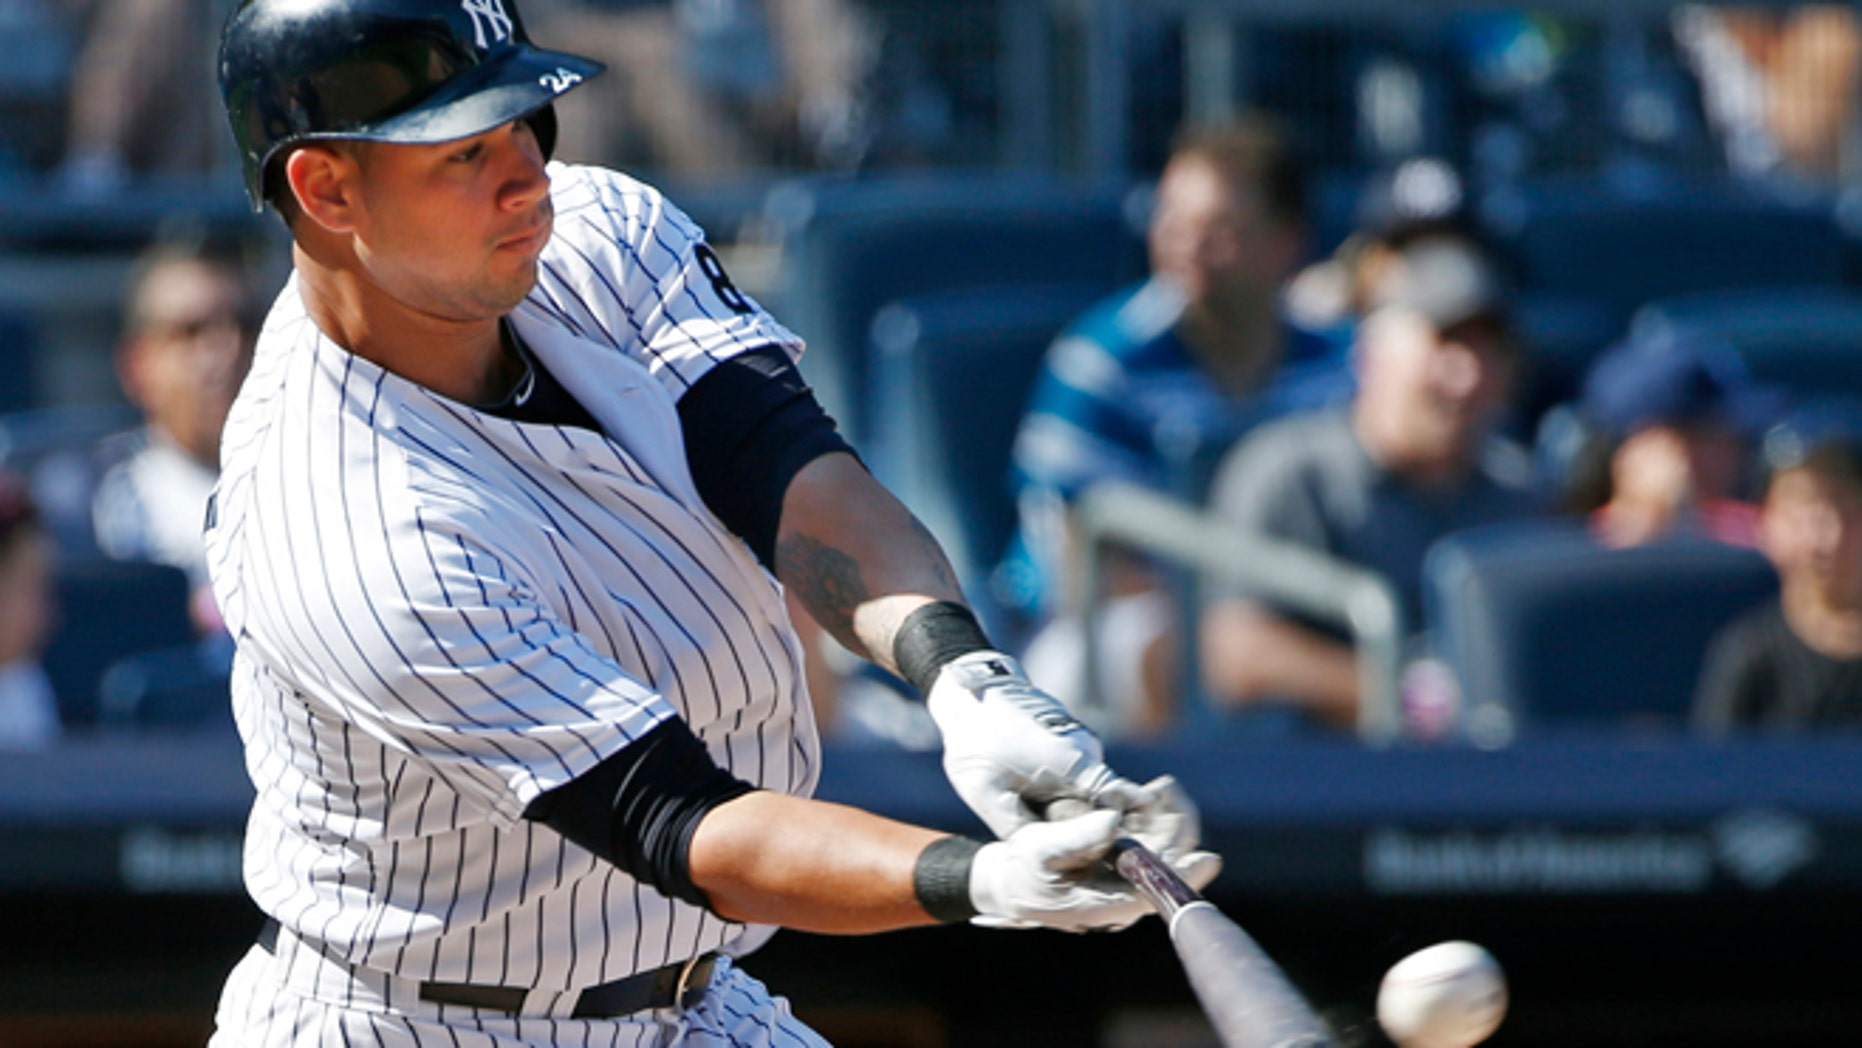 New York Yankees designated hitter Gary Sanchez (24) hits an eighth-inning double in a baseball game against the Baltimore Orioles in New York, Sunday, Aug. 28, 2016. (AP Photo/Kathy Willens)